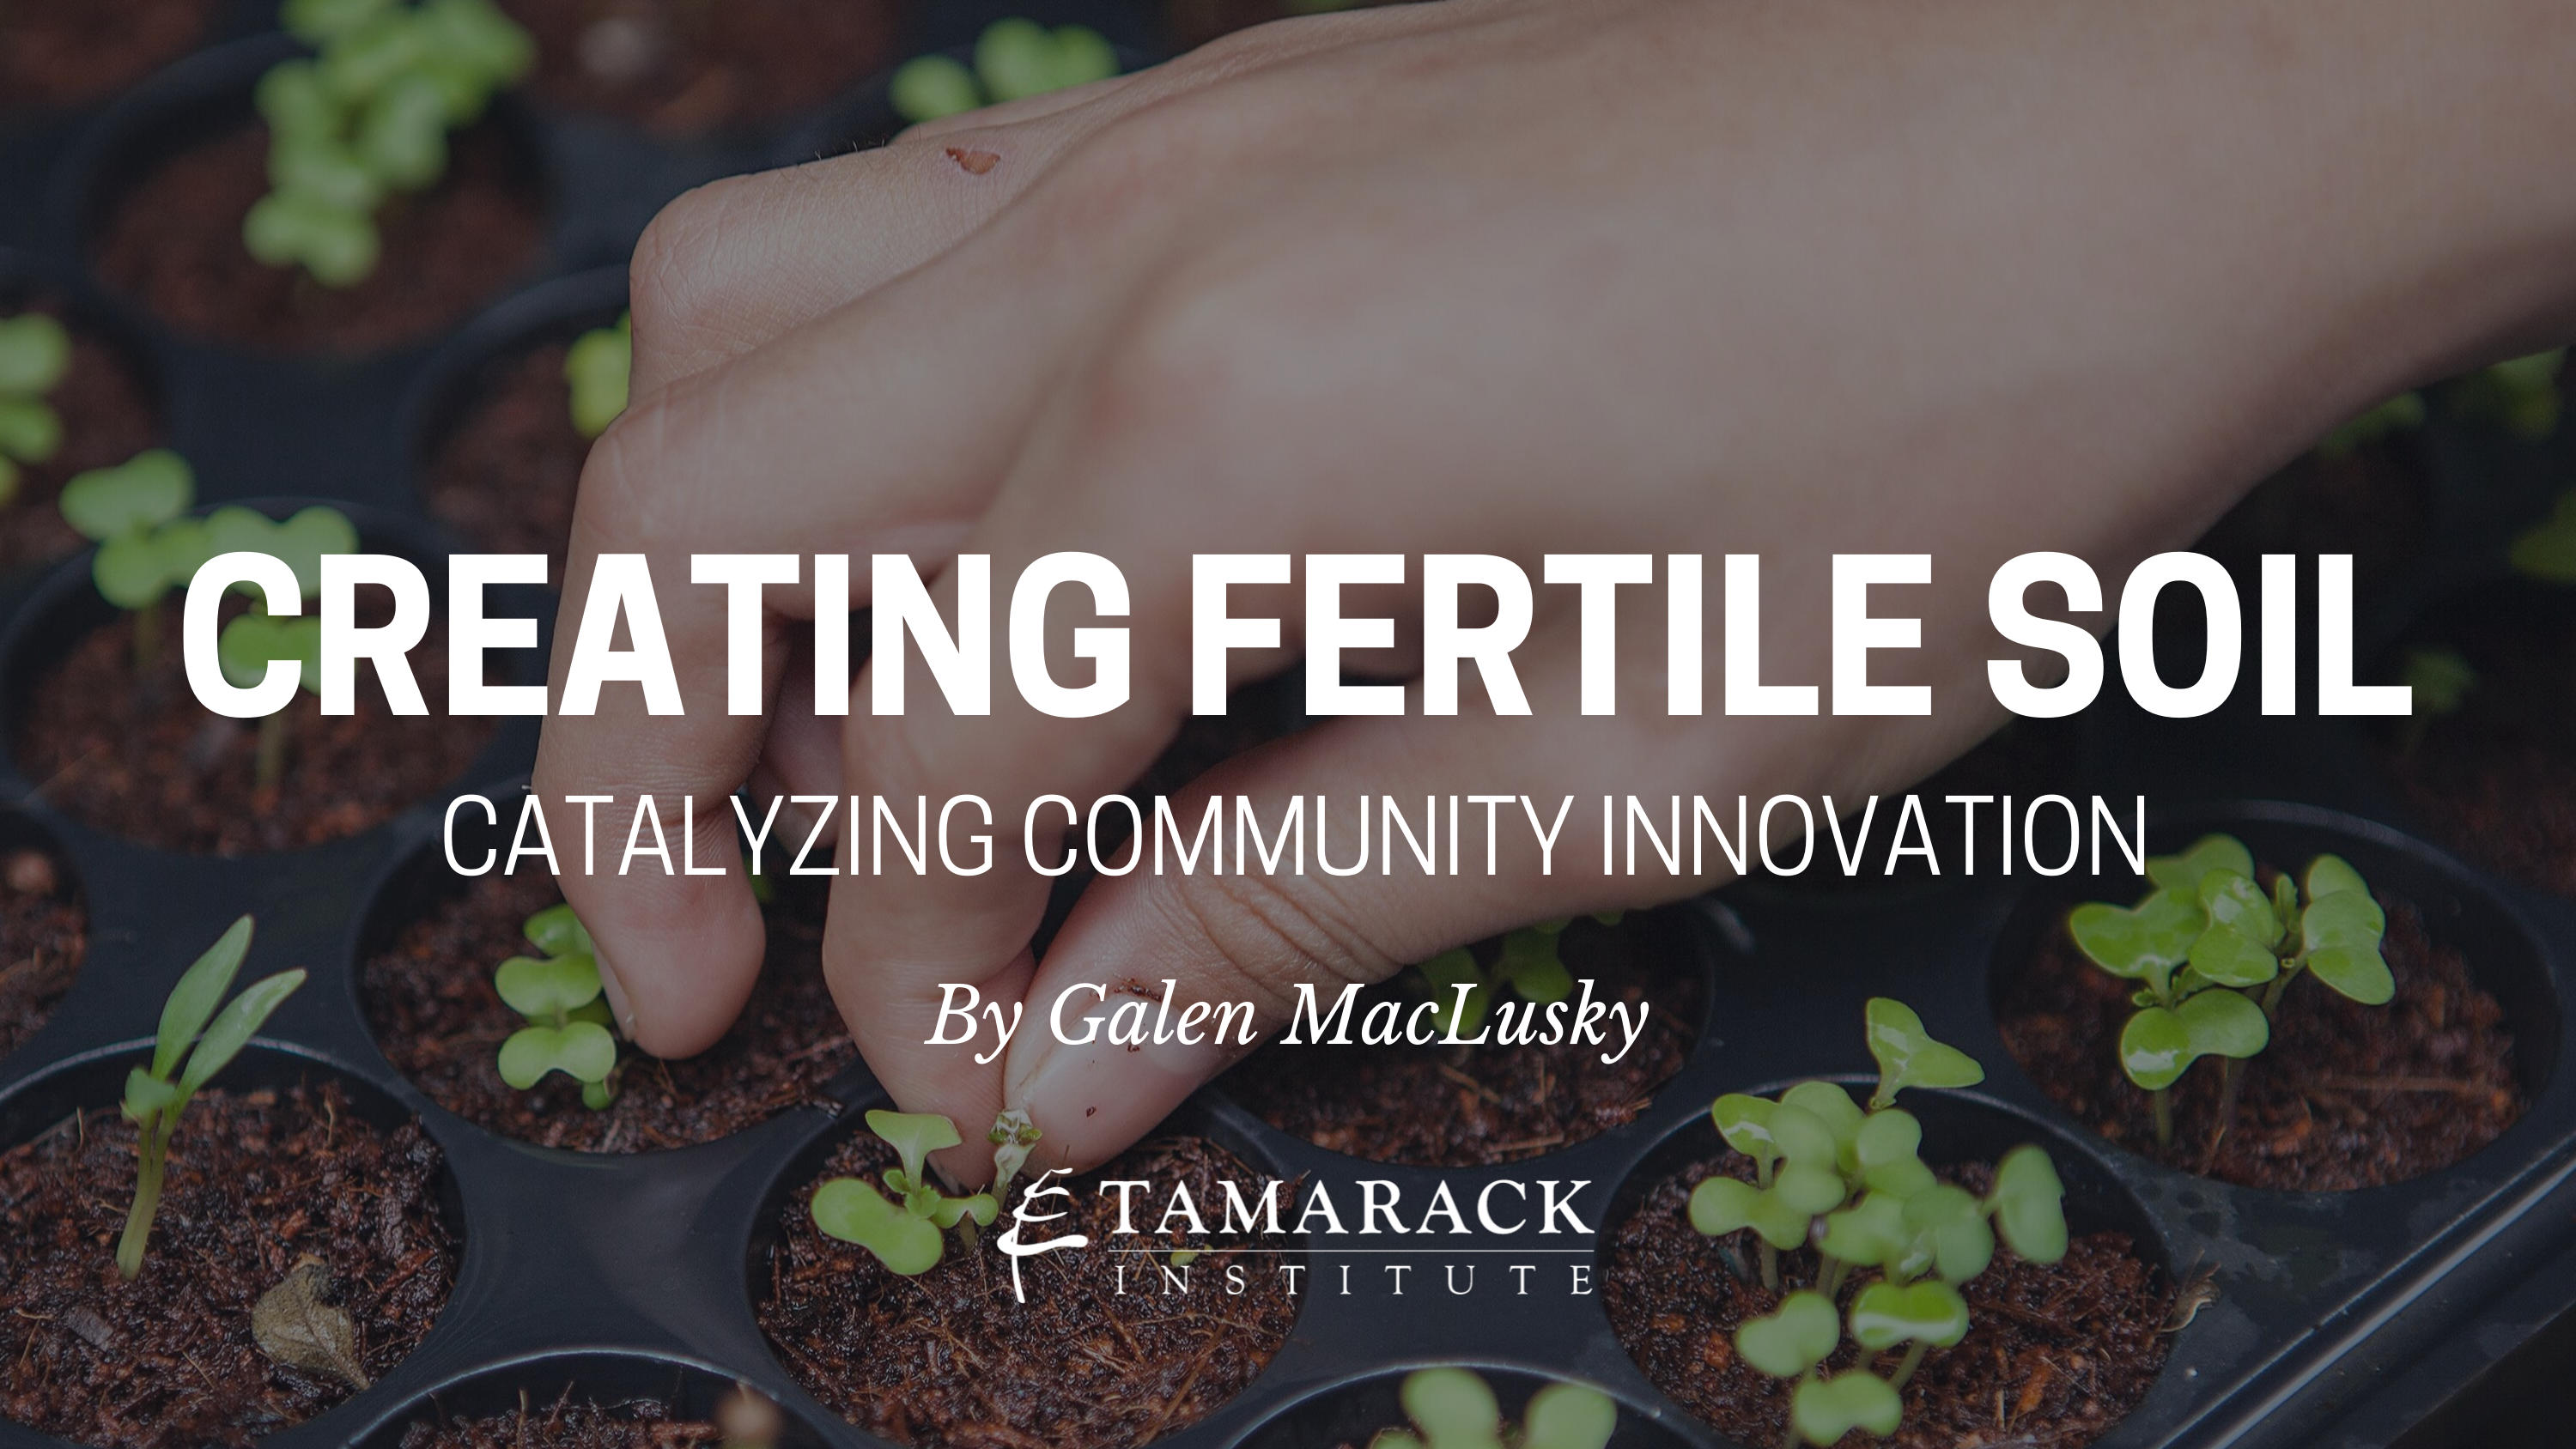 Creating Fertile Soil